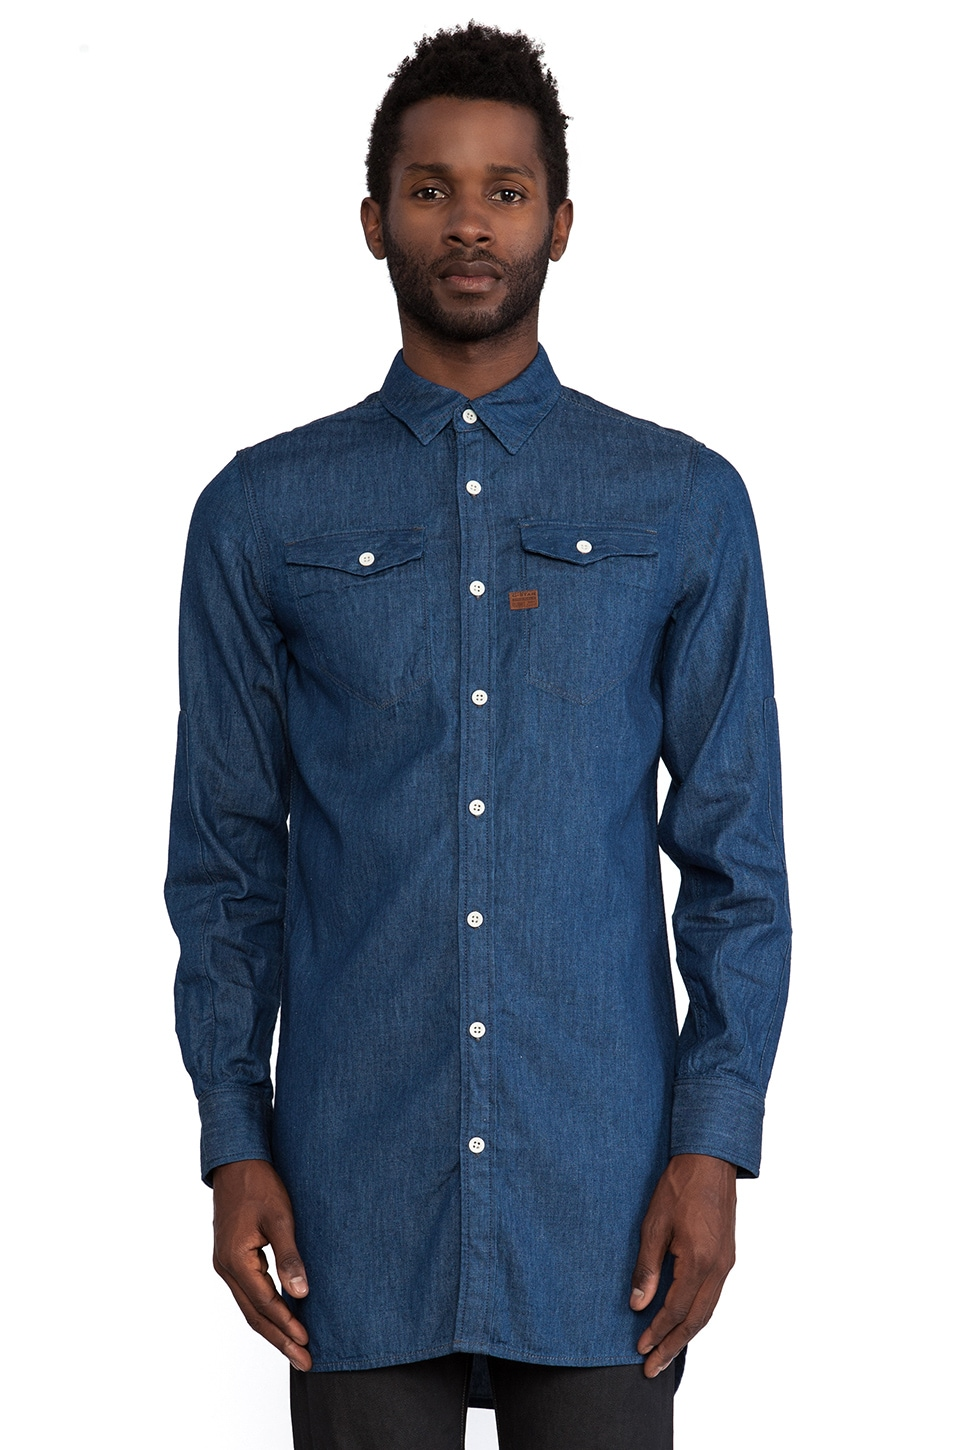 G-Star Tacoma XL Long Recruit Denim Shirt in Rinsed